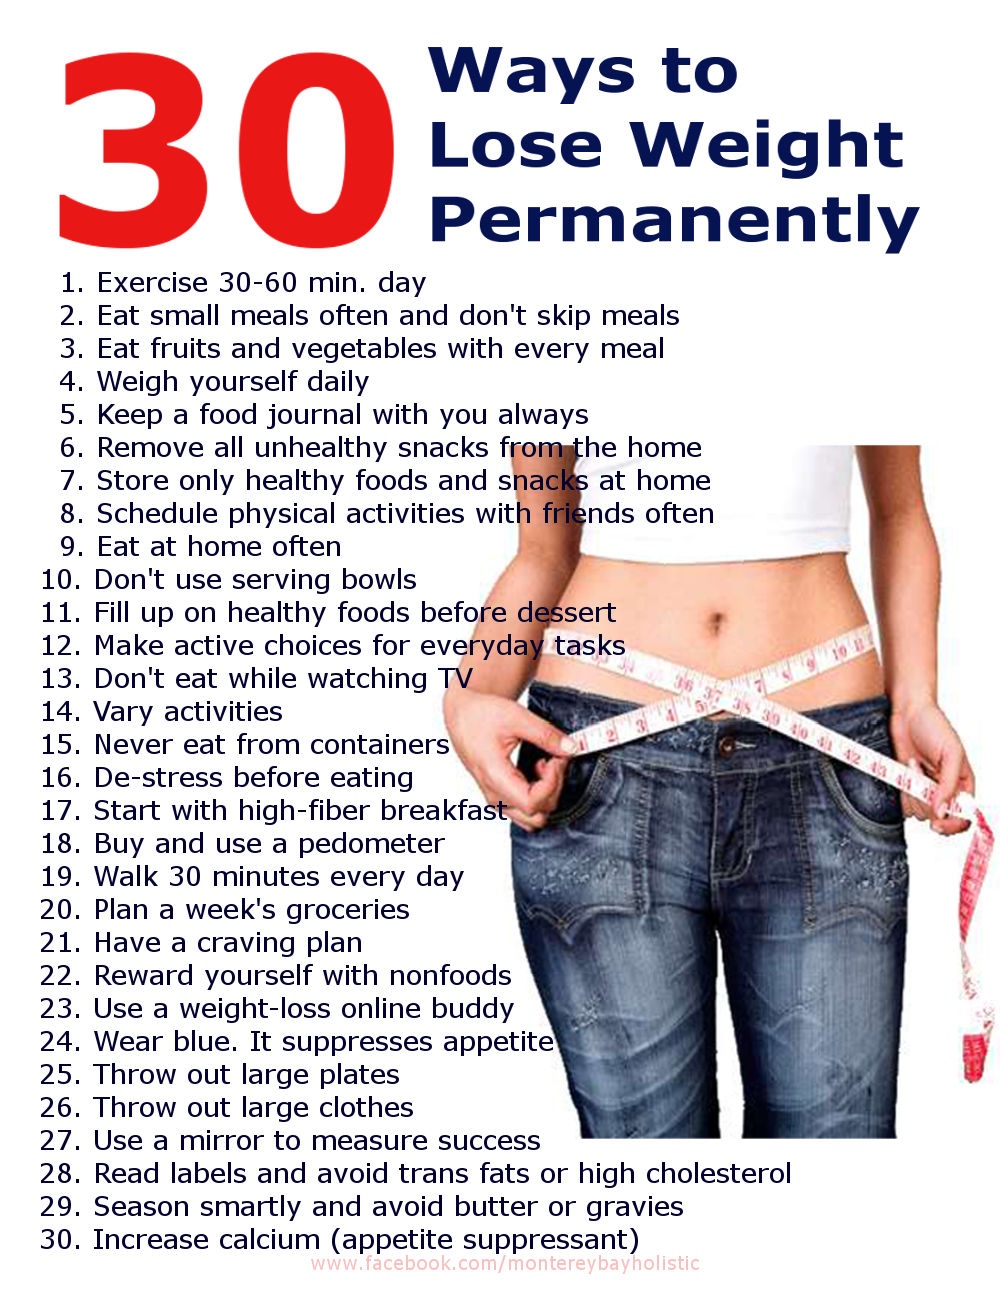 30 Ways To Lose Weight Permananetly